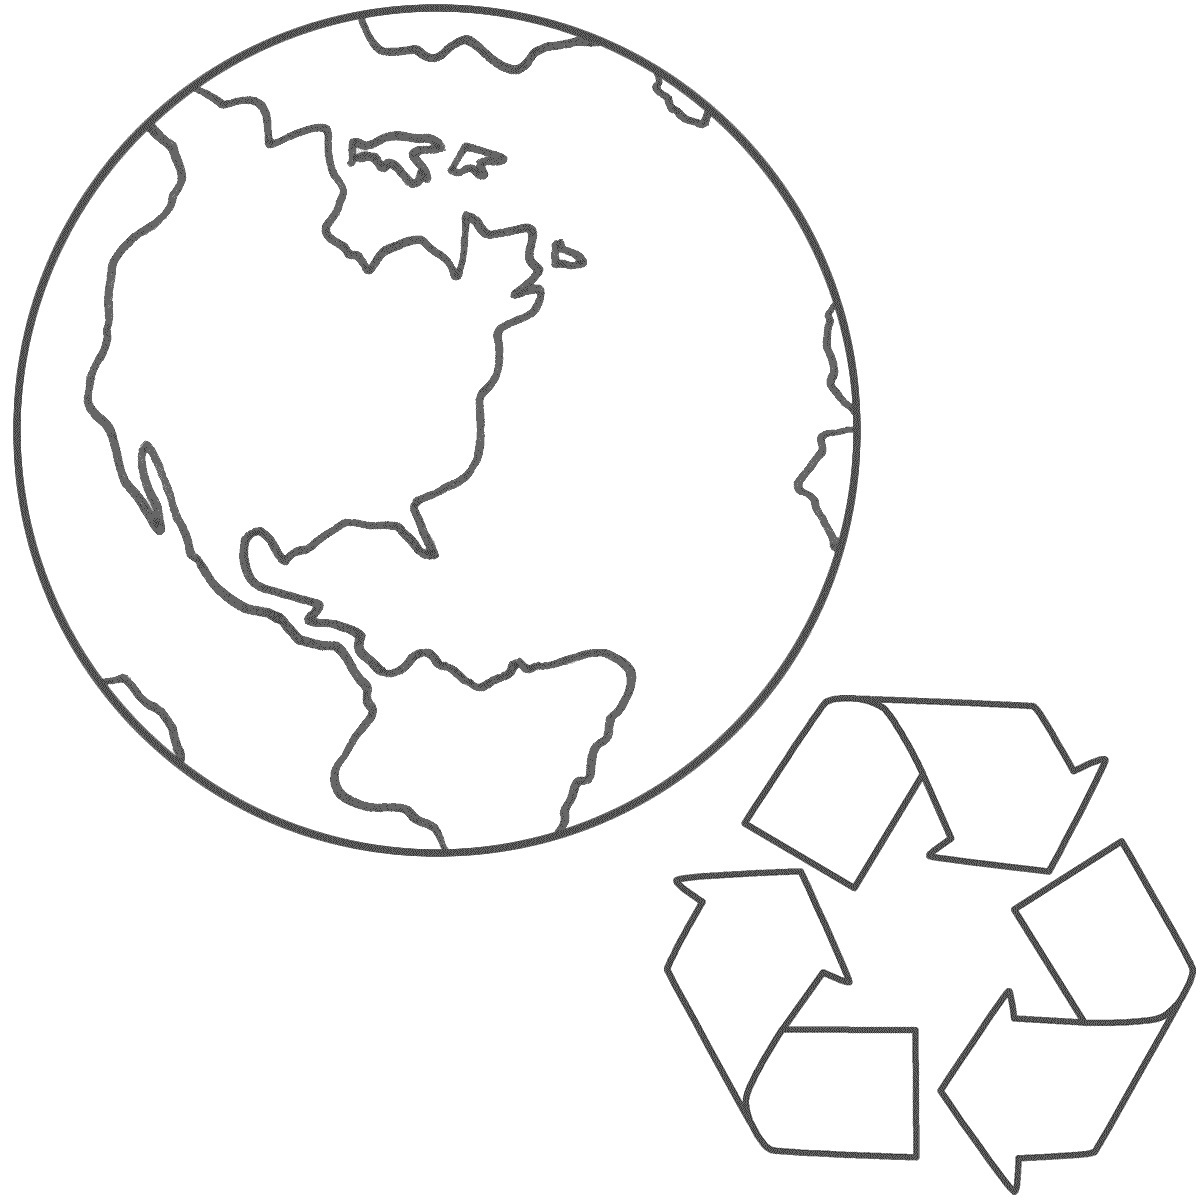 earth coloring pages free free printable earth coloring pages for kids coloring pages free earth